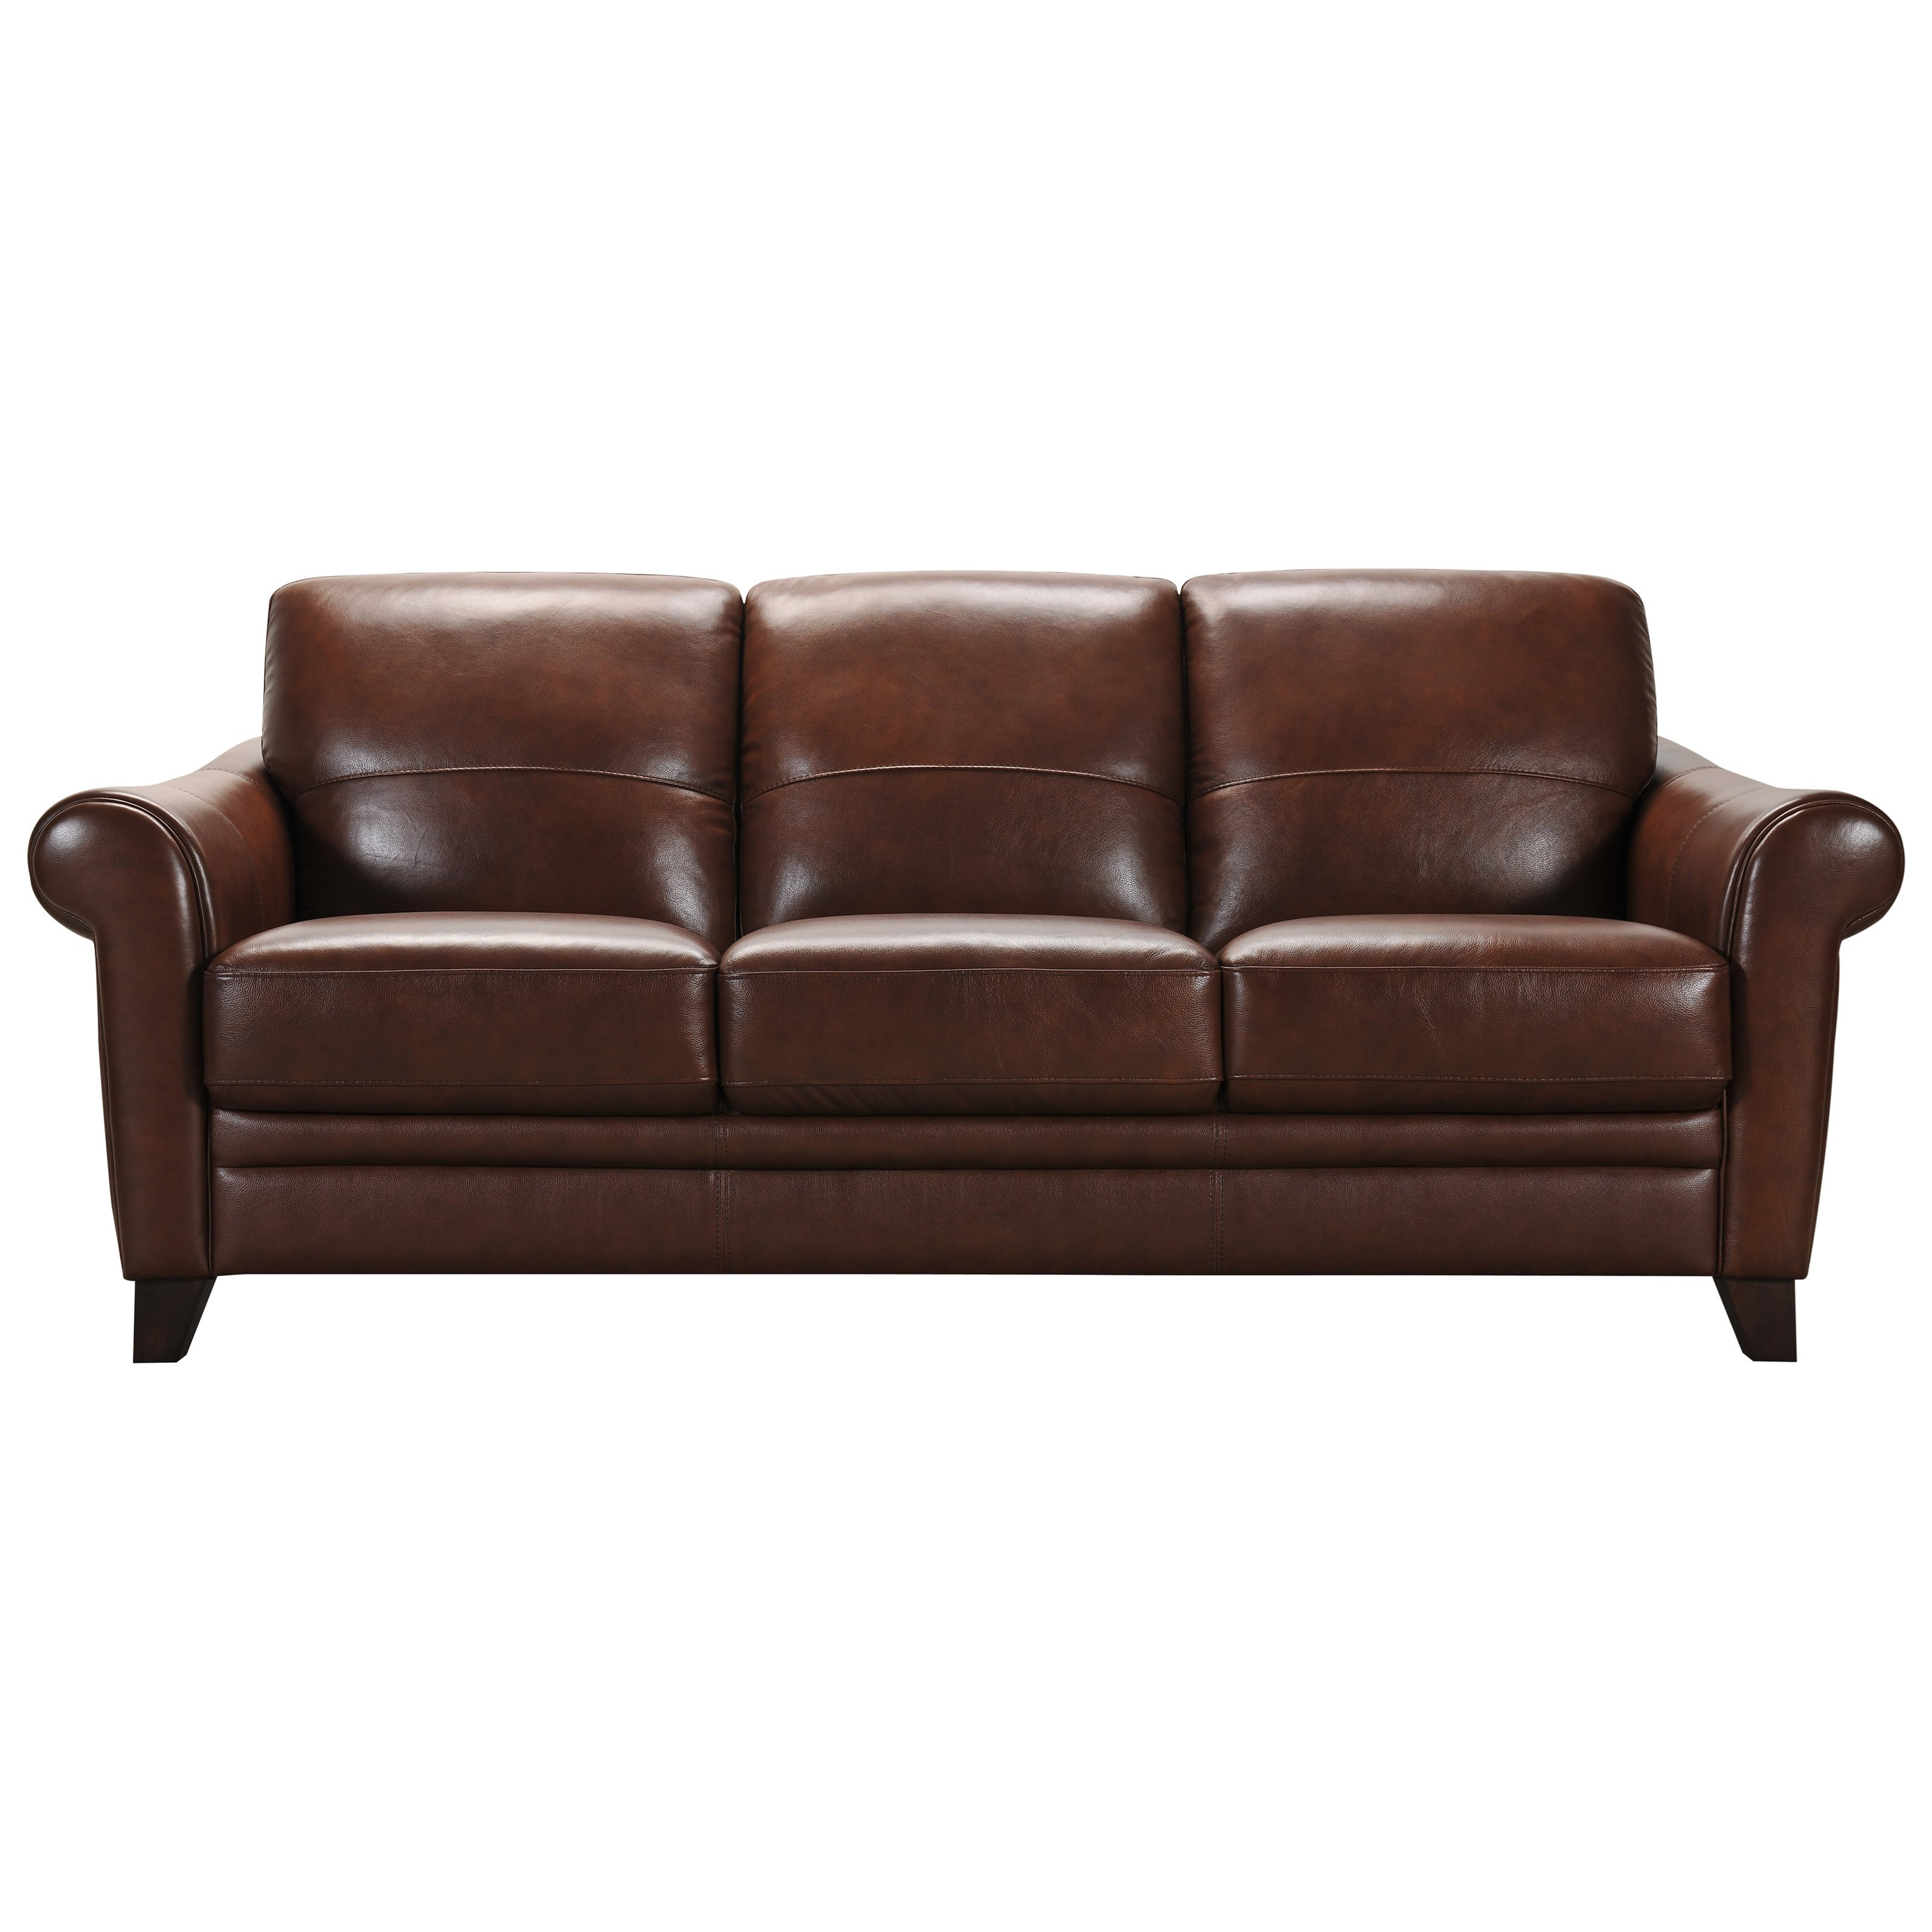 32238 Sofa by Violino at Furniture Superstore - Rochester, MN